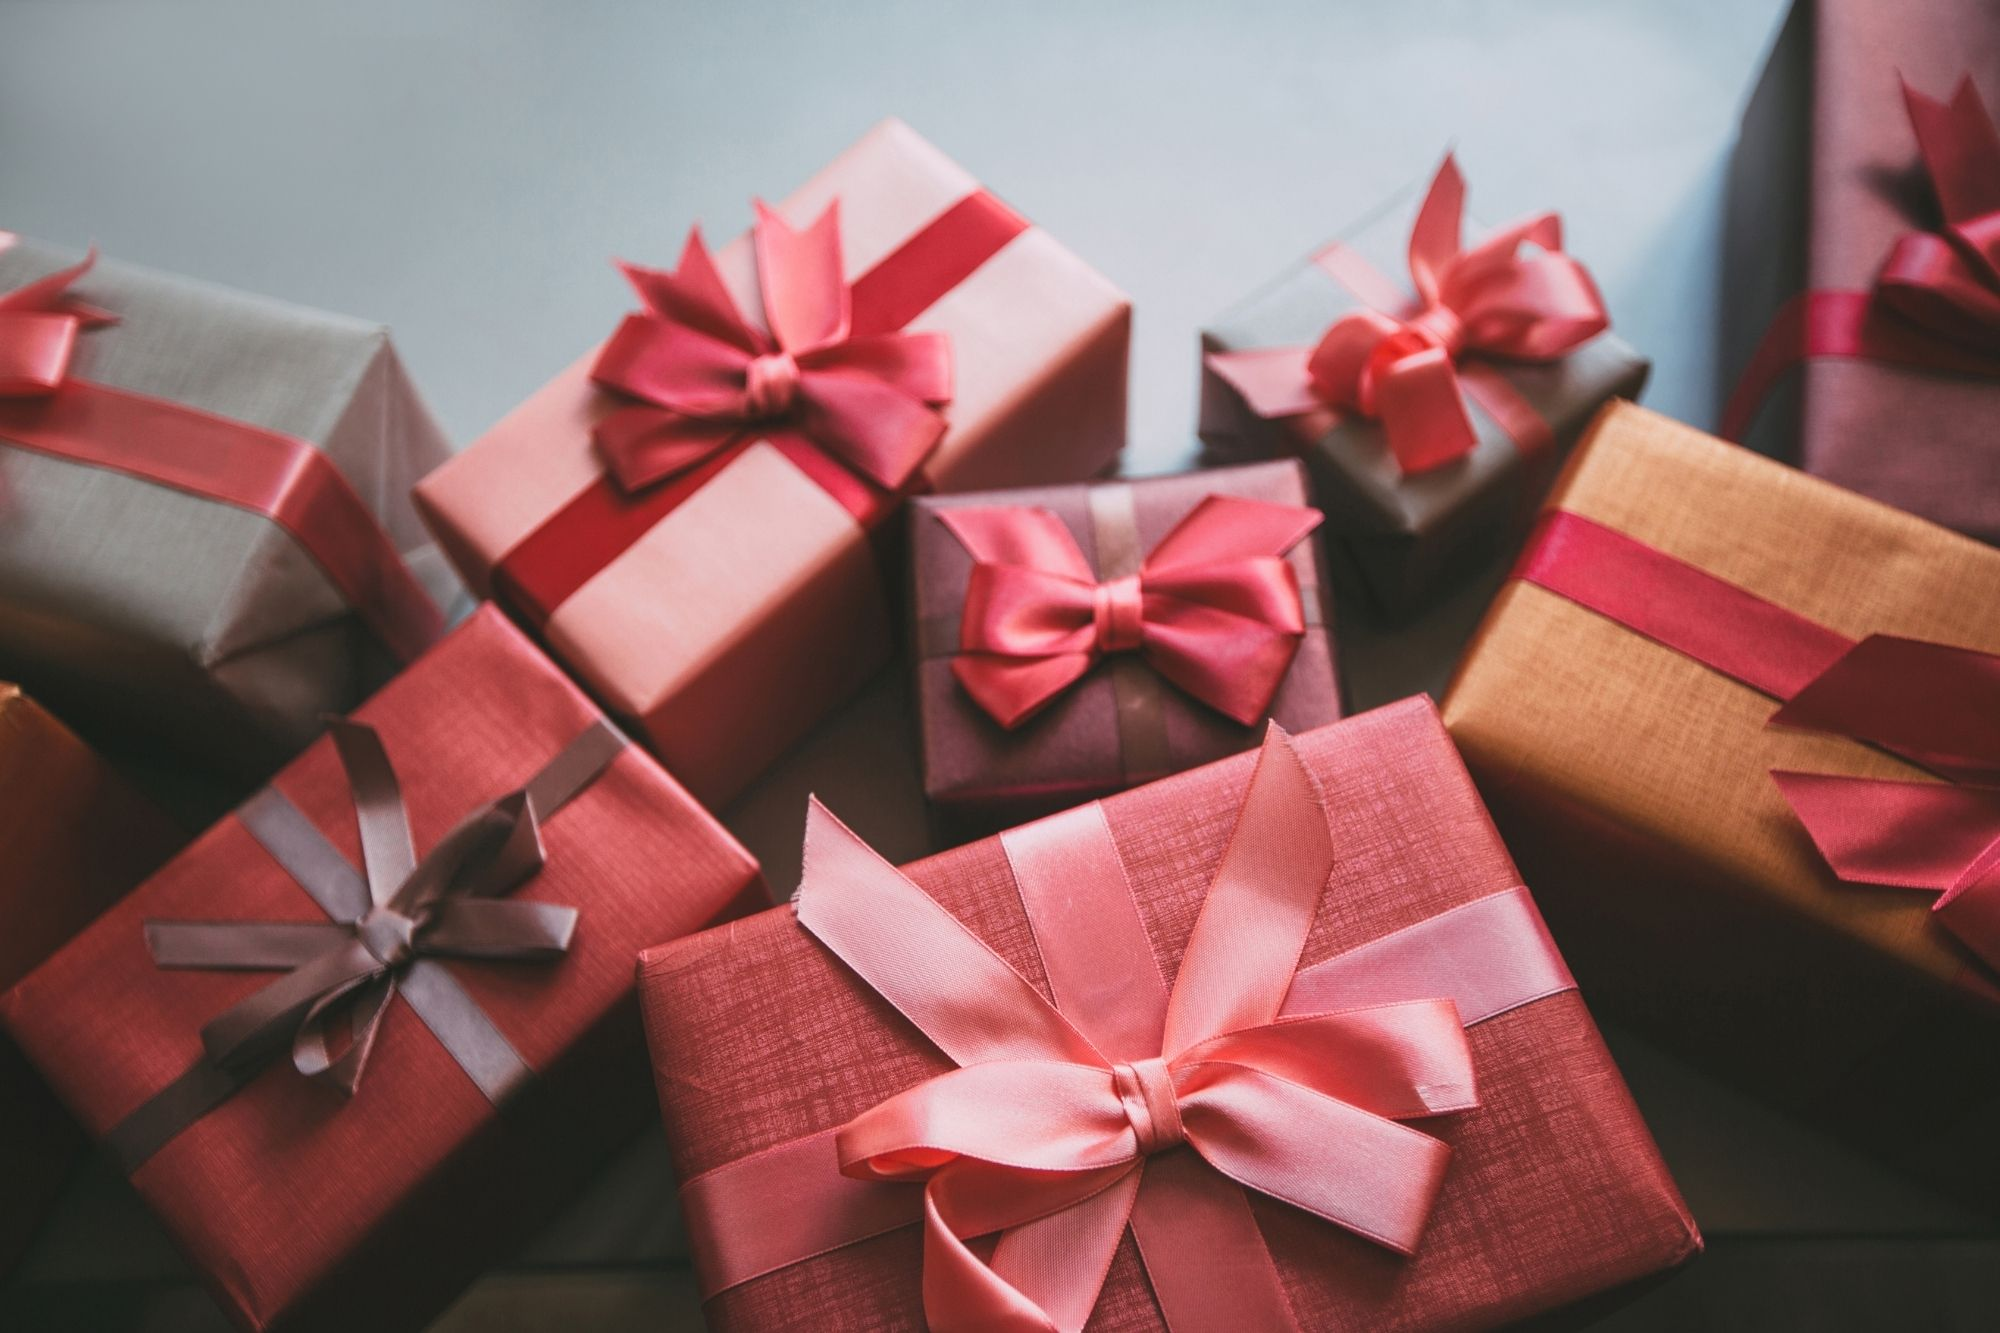 eCommerce Peak Season Is Here! Top Tips For Your Brand's Holiday Readiness